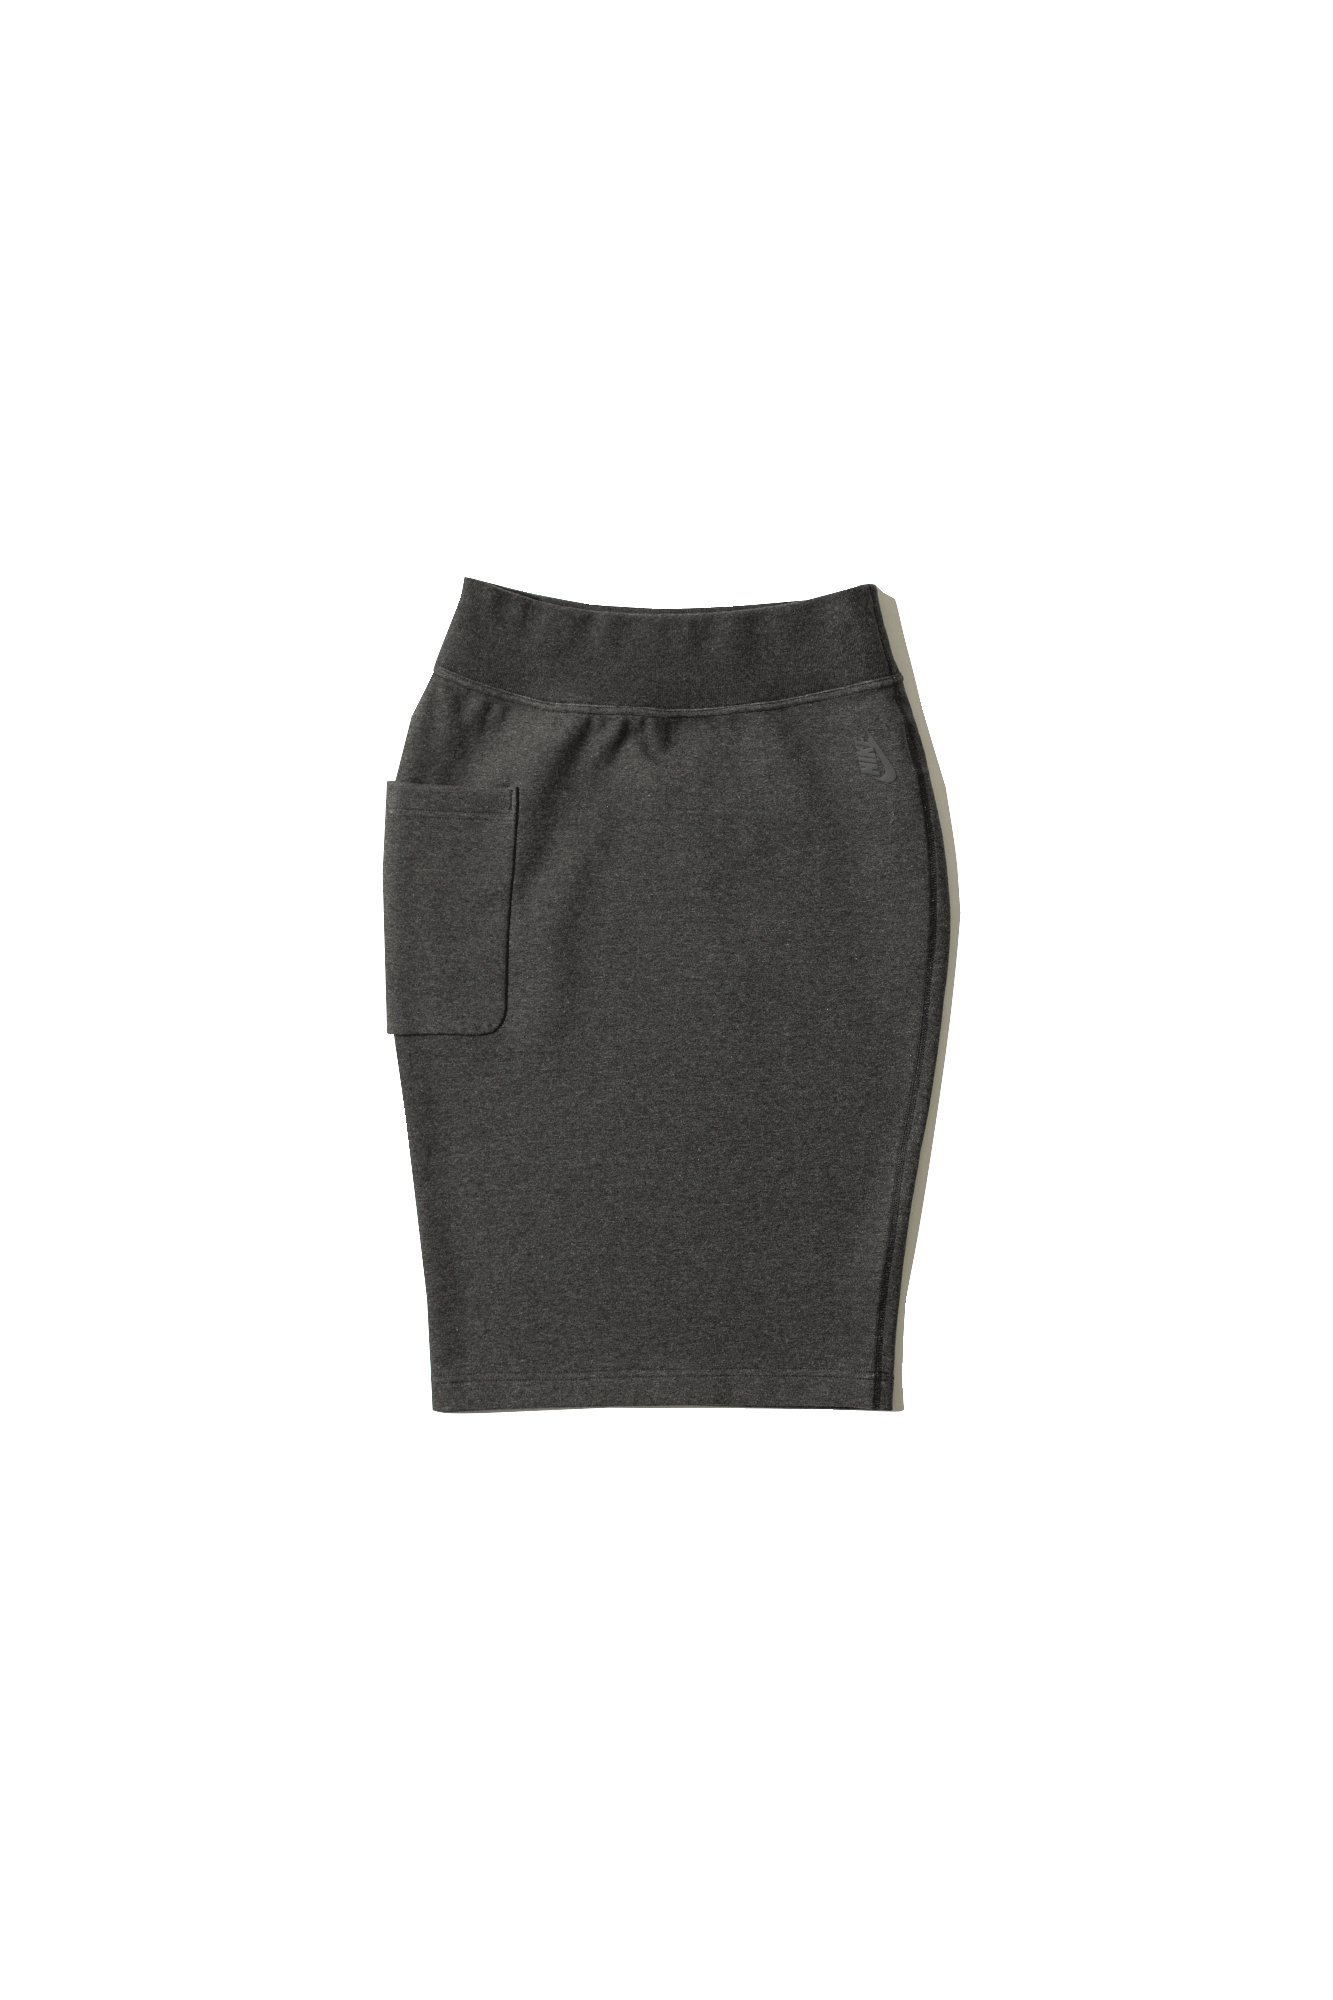 Nike Lab Essentials Women's Cotton Skirt (L, Heather/Black-Black)